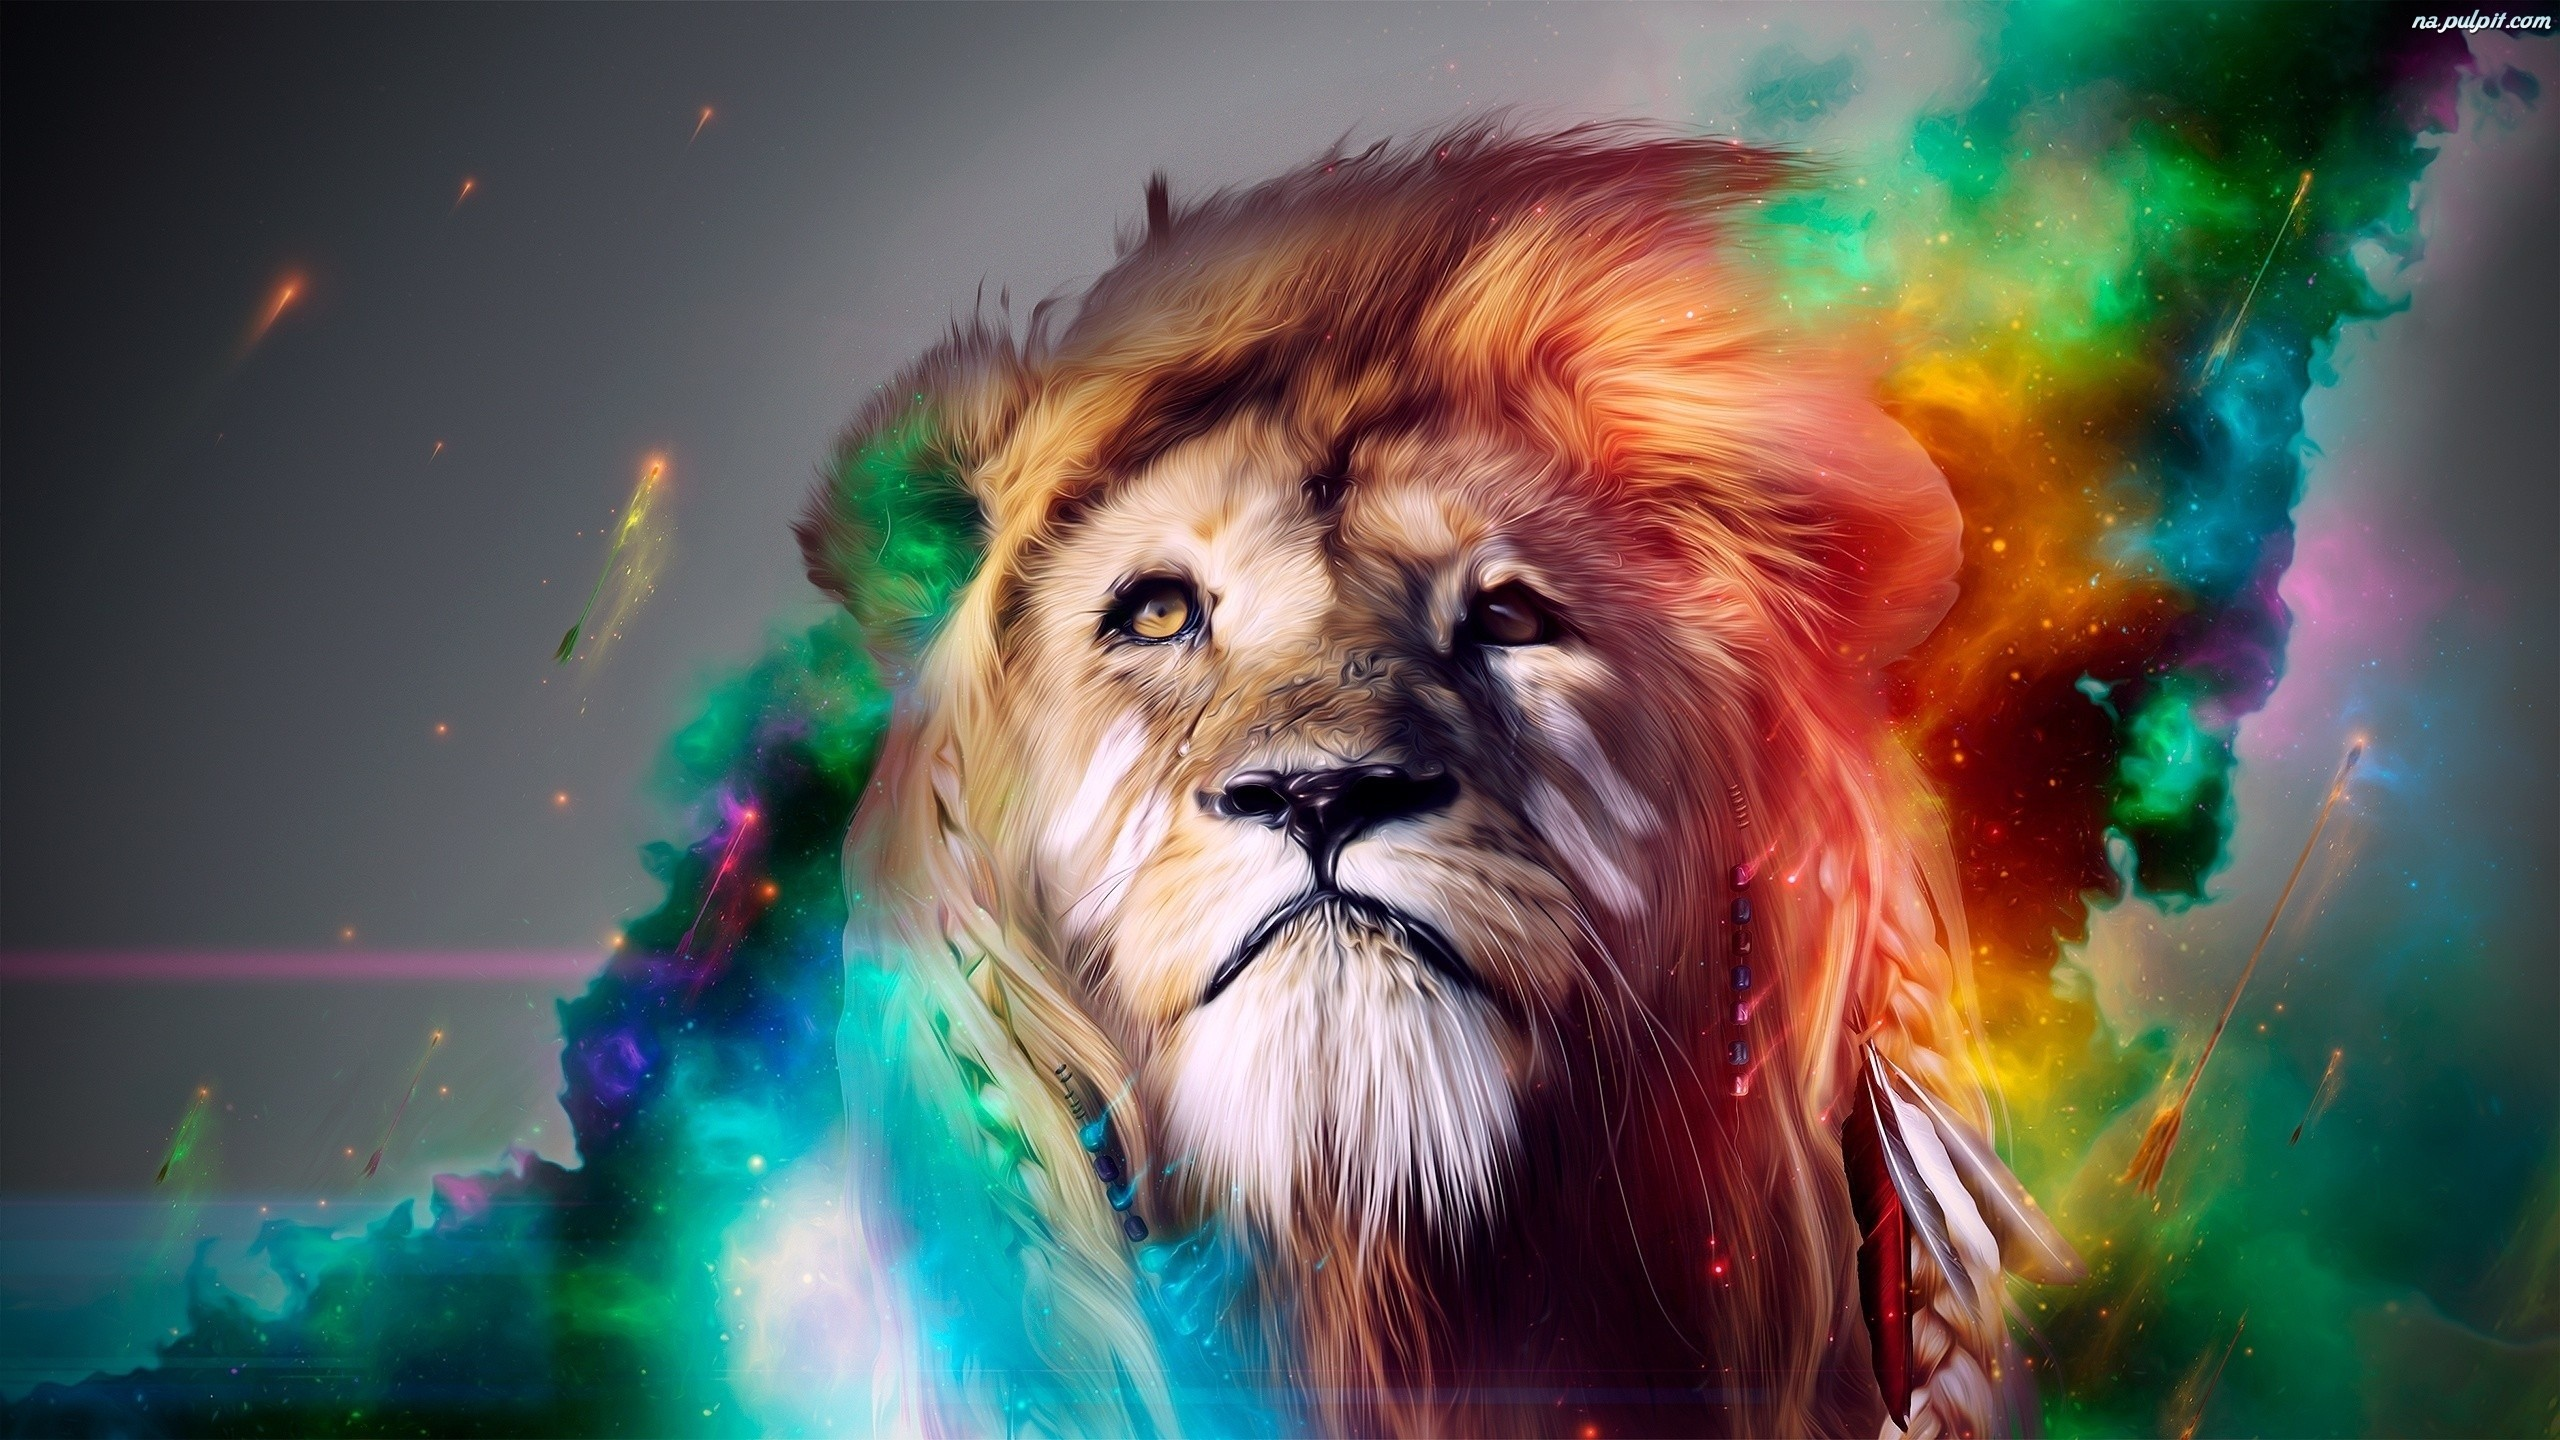 A colorful lion. I found this image really attractive and powerful. Its  shows the vivid colors and the face of the lion in the perfect spot.